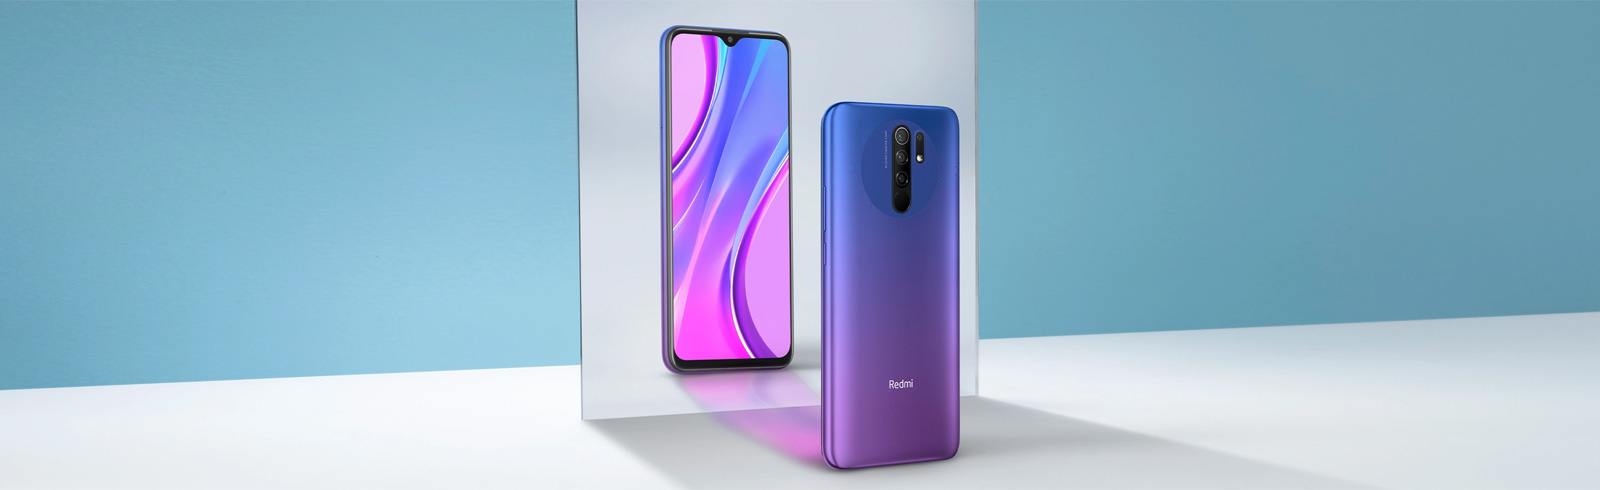 Xiaomi launches the Redmi 9 and Redmi 9 Prime for India